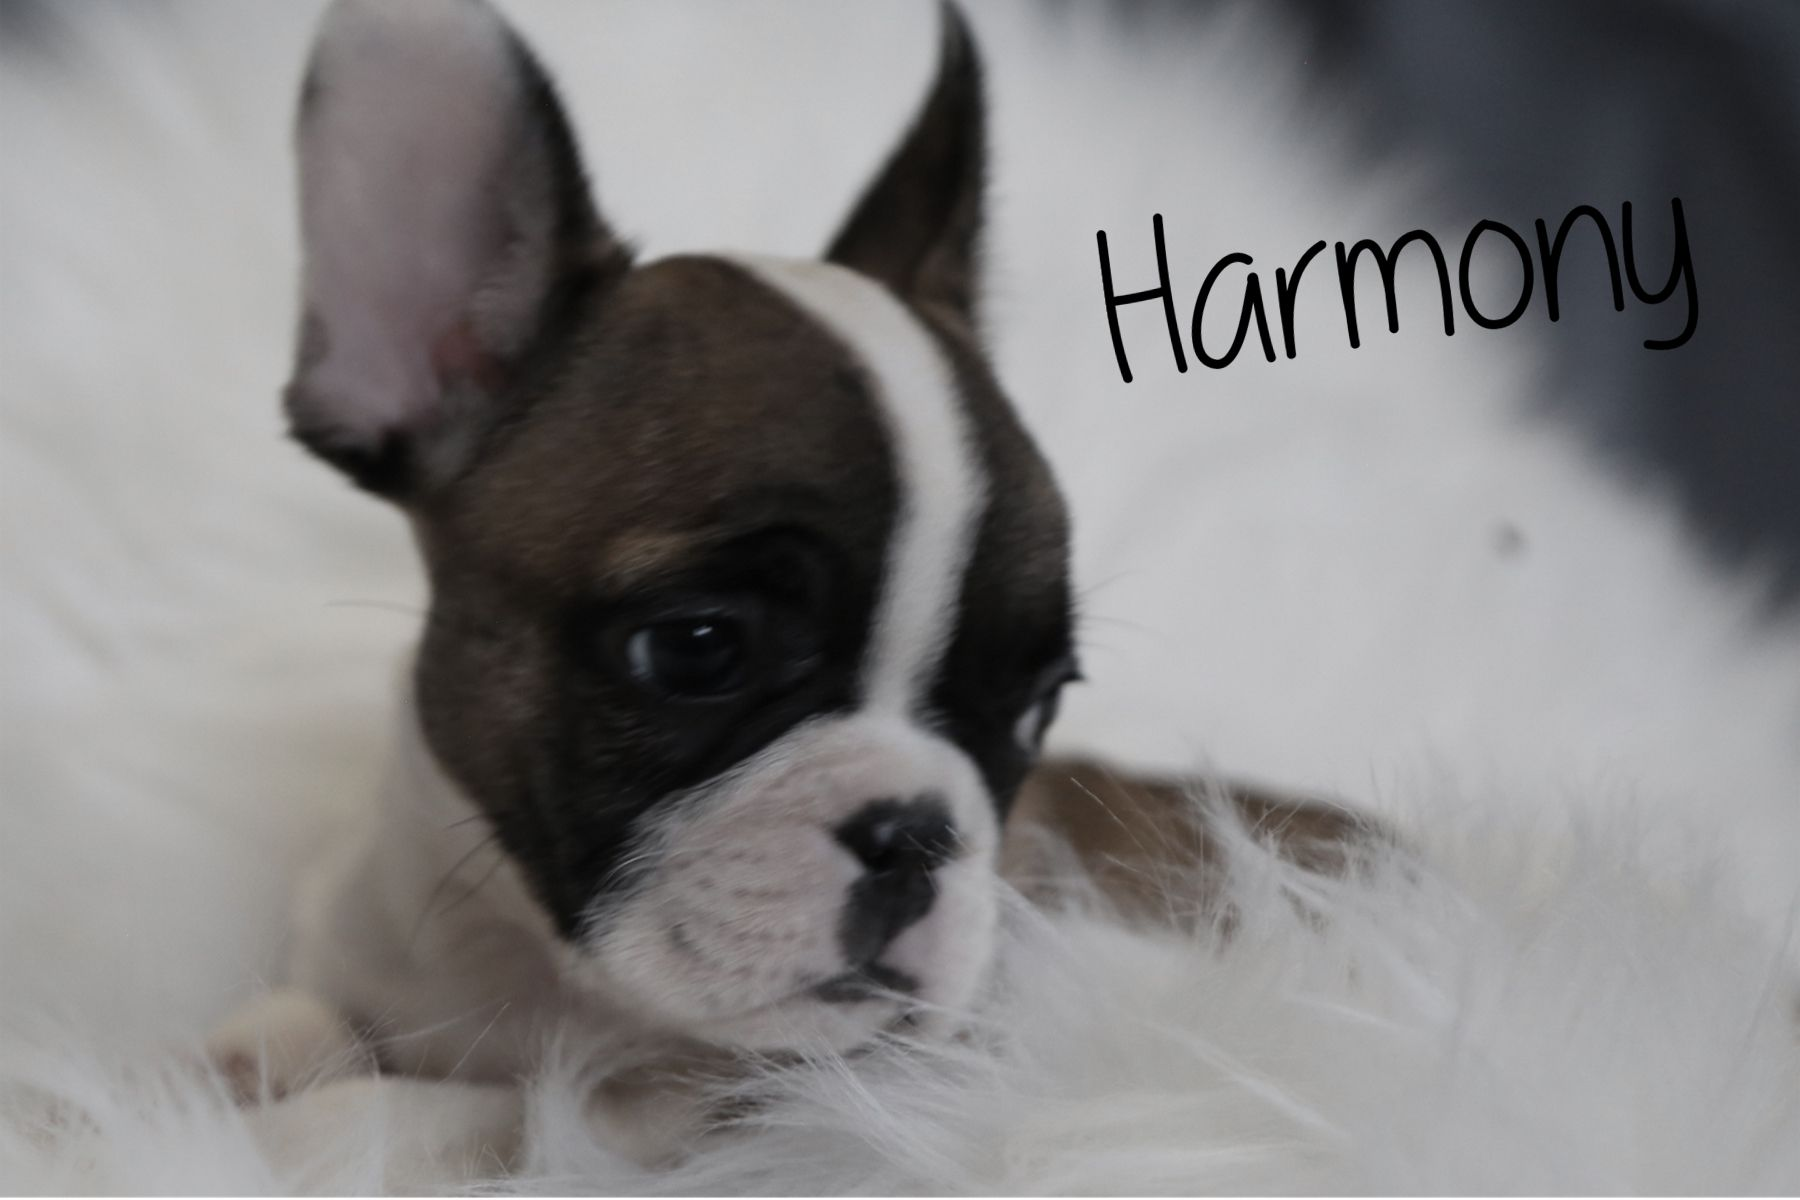 Harmony Female French Bulldog Puppy from Ewing, Illinois